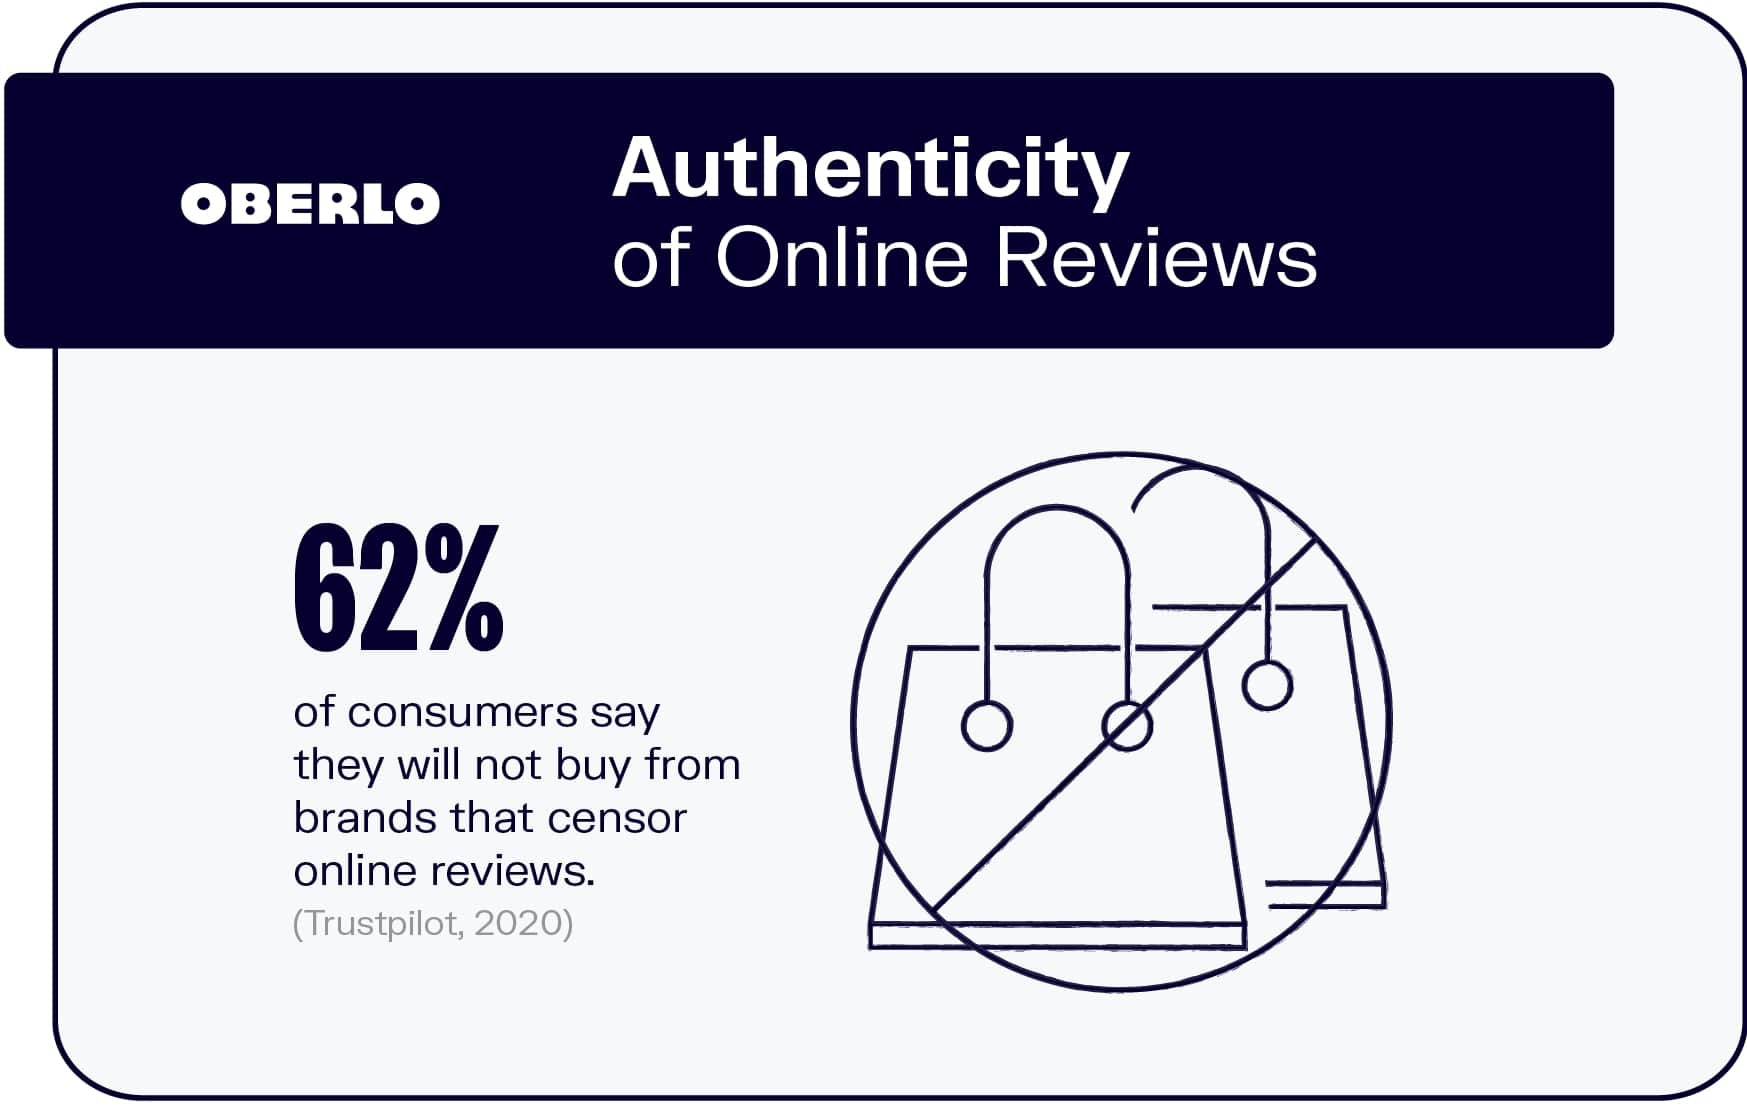 Authenticity of Online Reviews